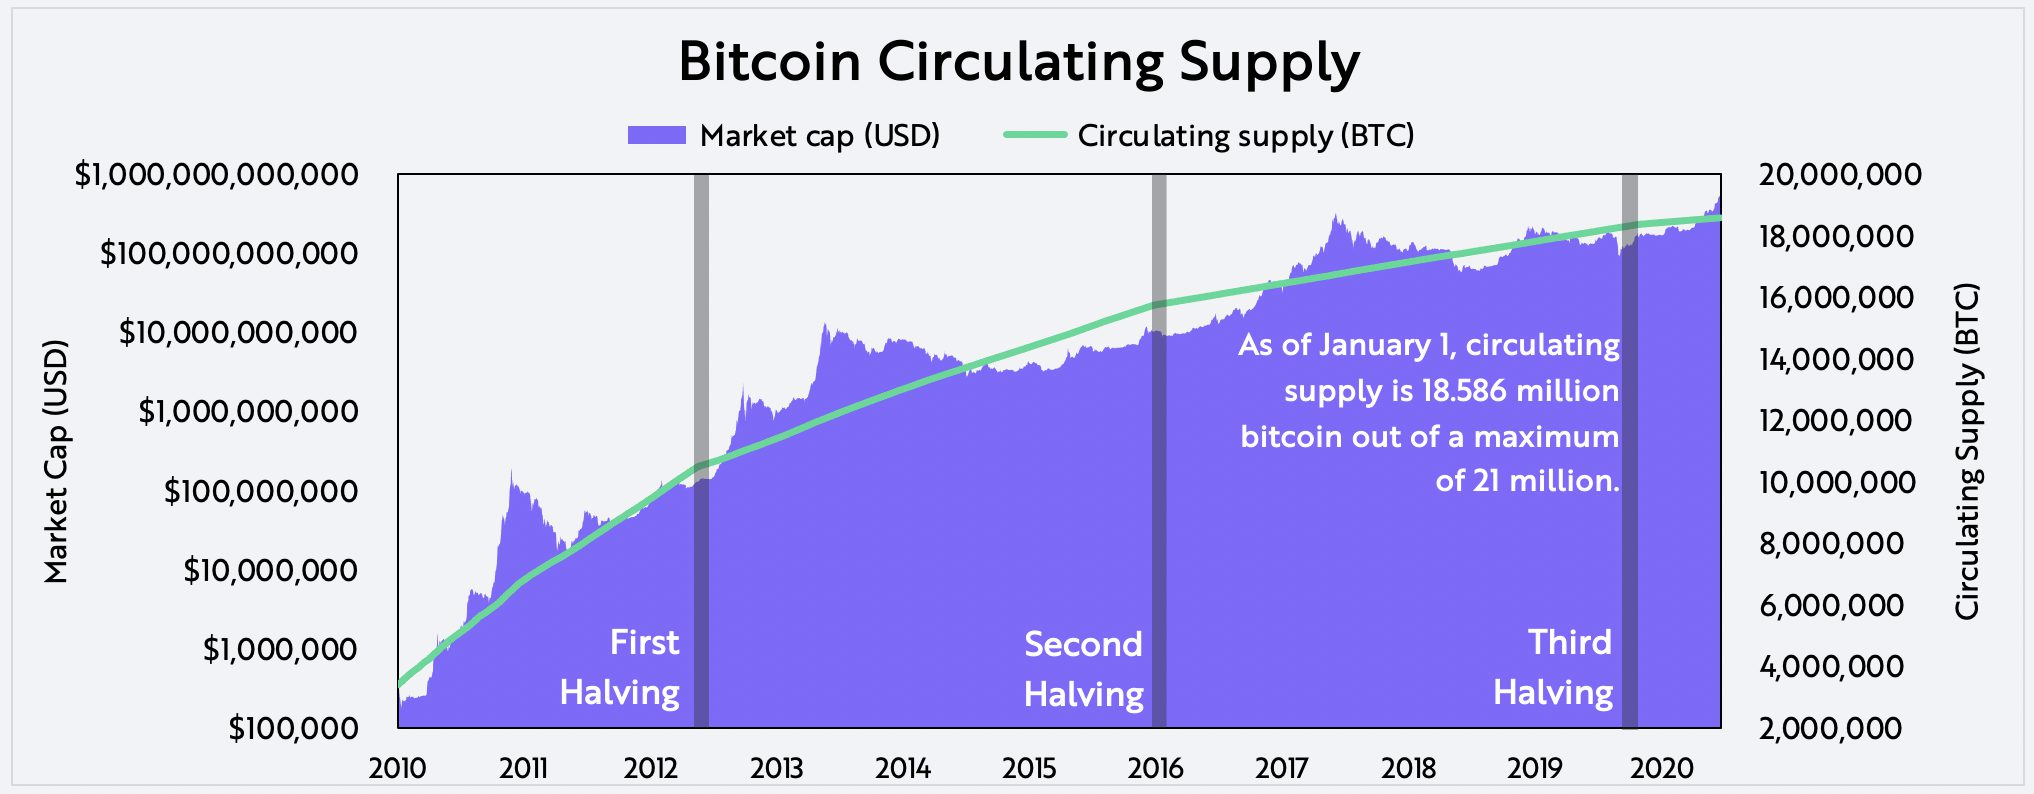 Evaluating Bitcoin_Circulating Supply on-chain